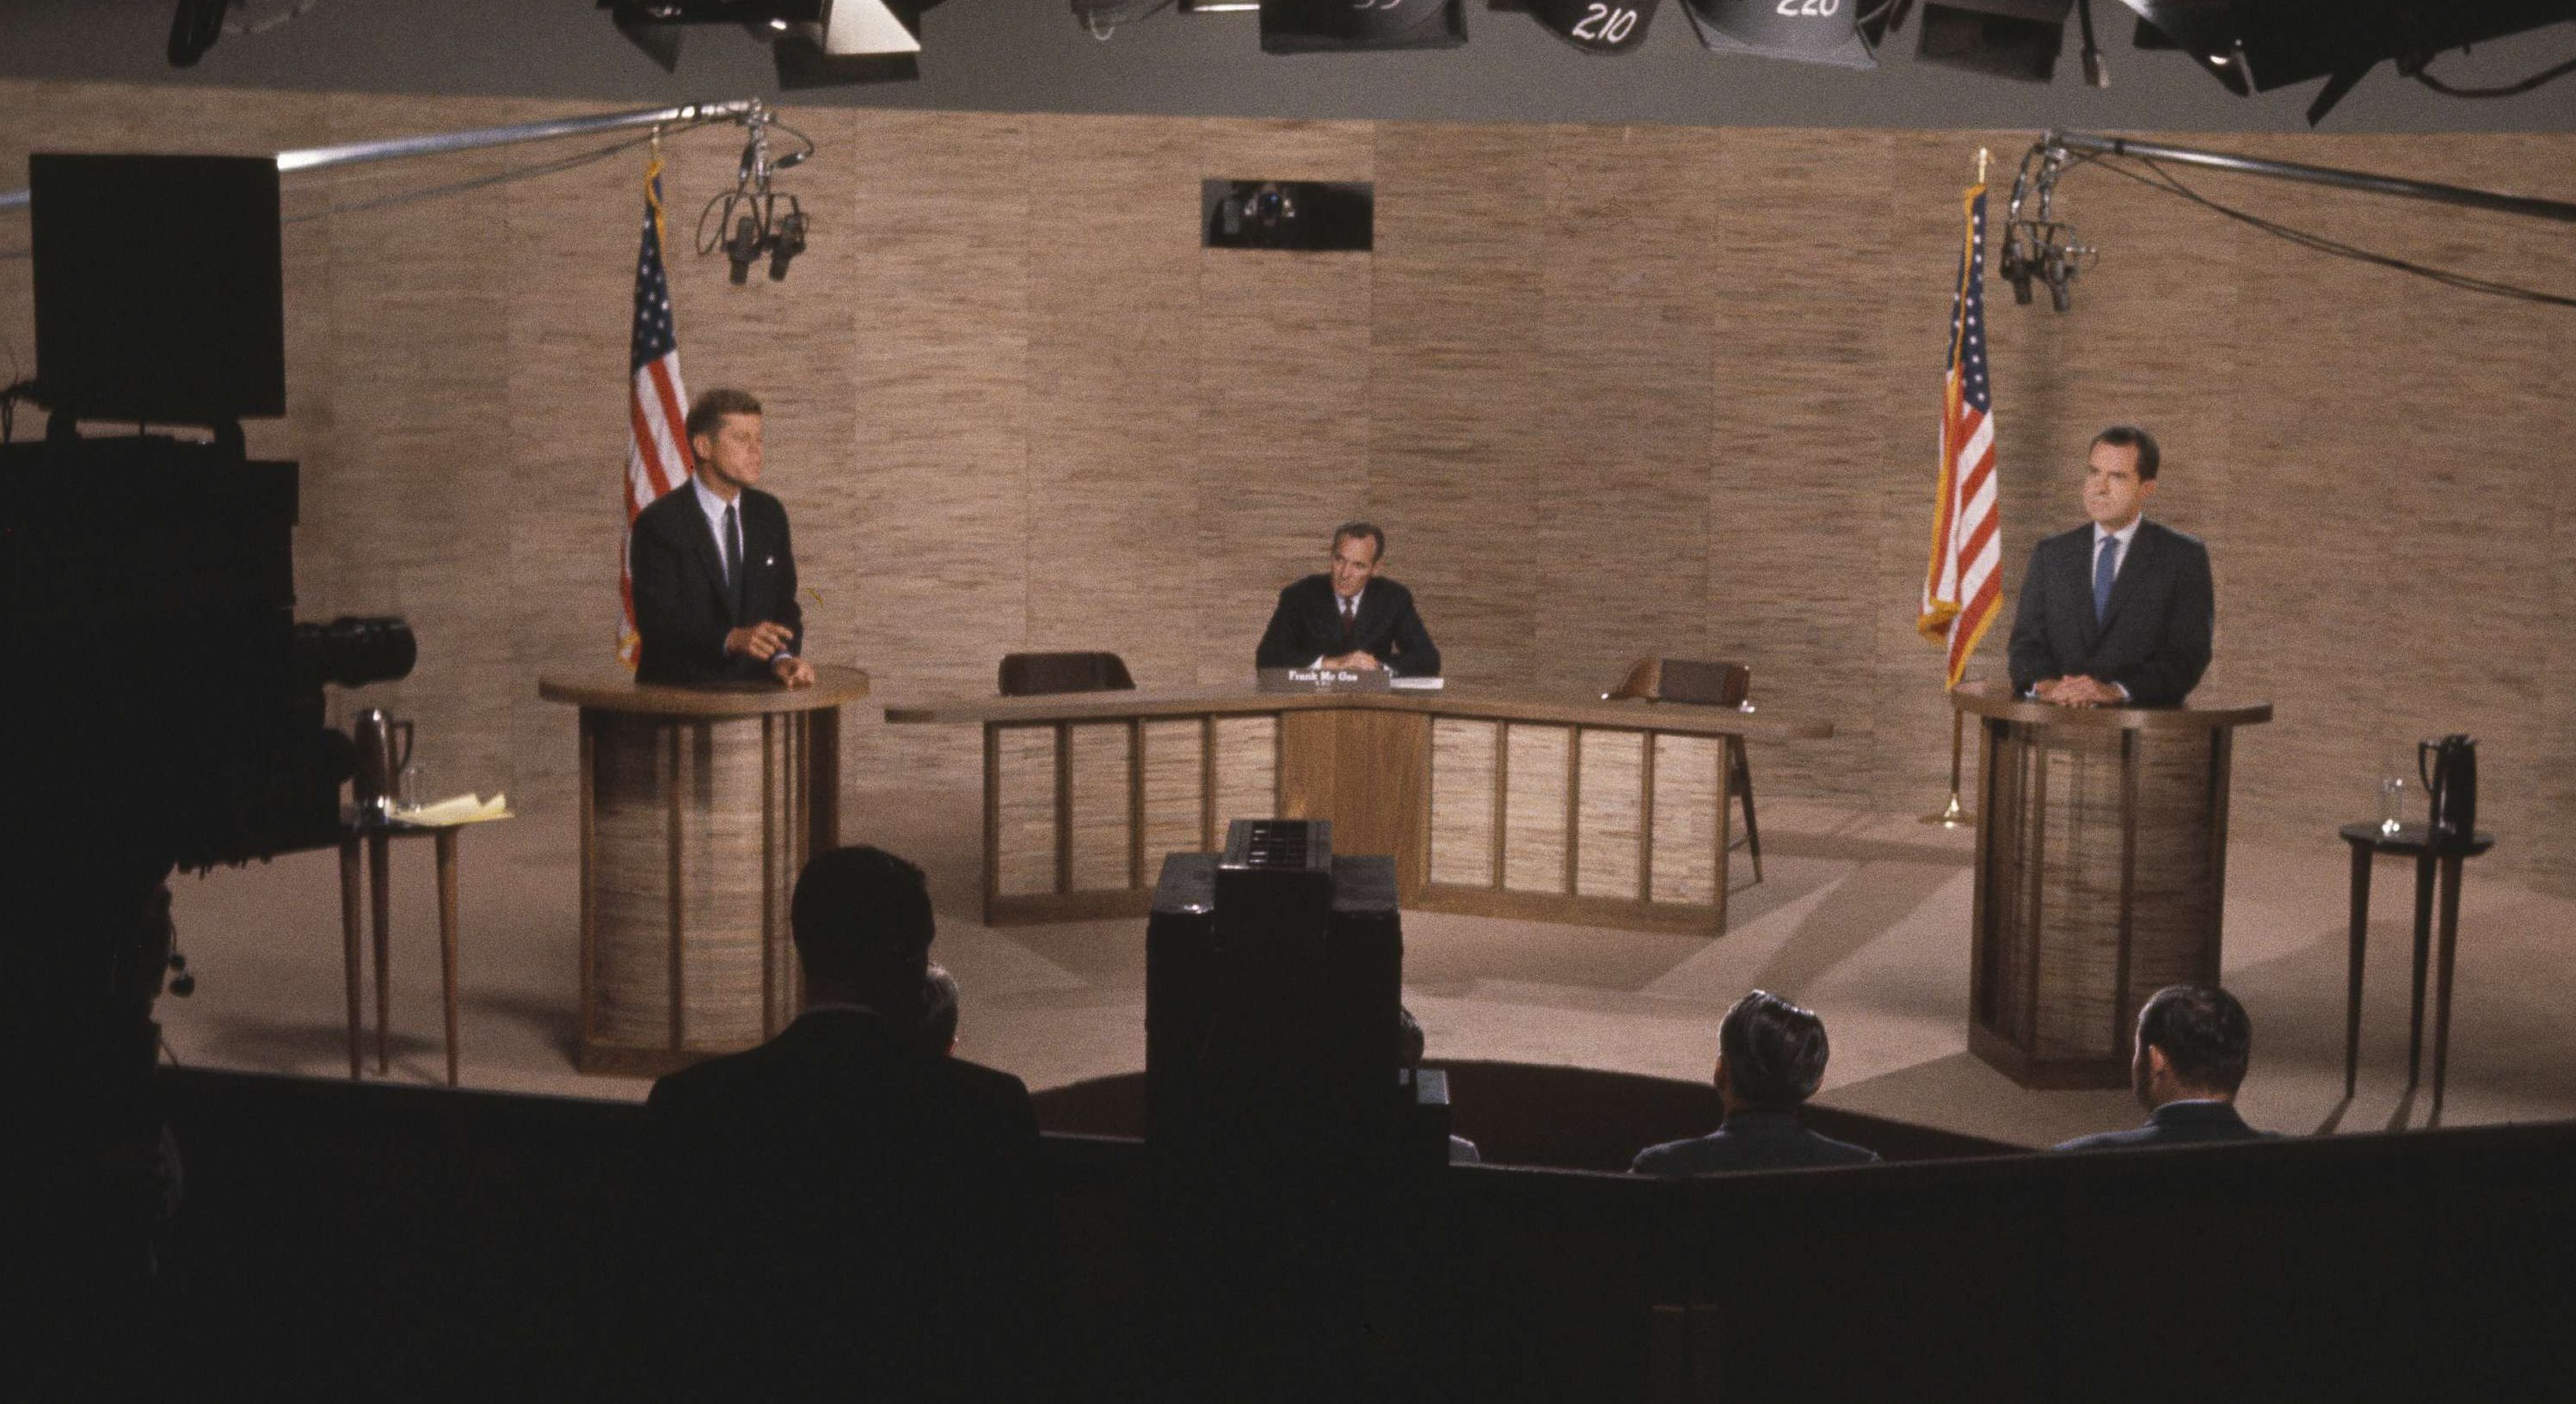 Newsman Howard K. Smith, center, acts as moderator during the debate between Sen. John F. Kennedy (D-Mass.), right, and Vice President Richard M. Nixon, in Washington, D.C., Oct. 7, 1960.